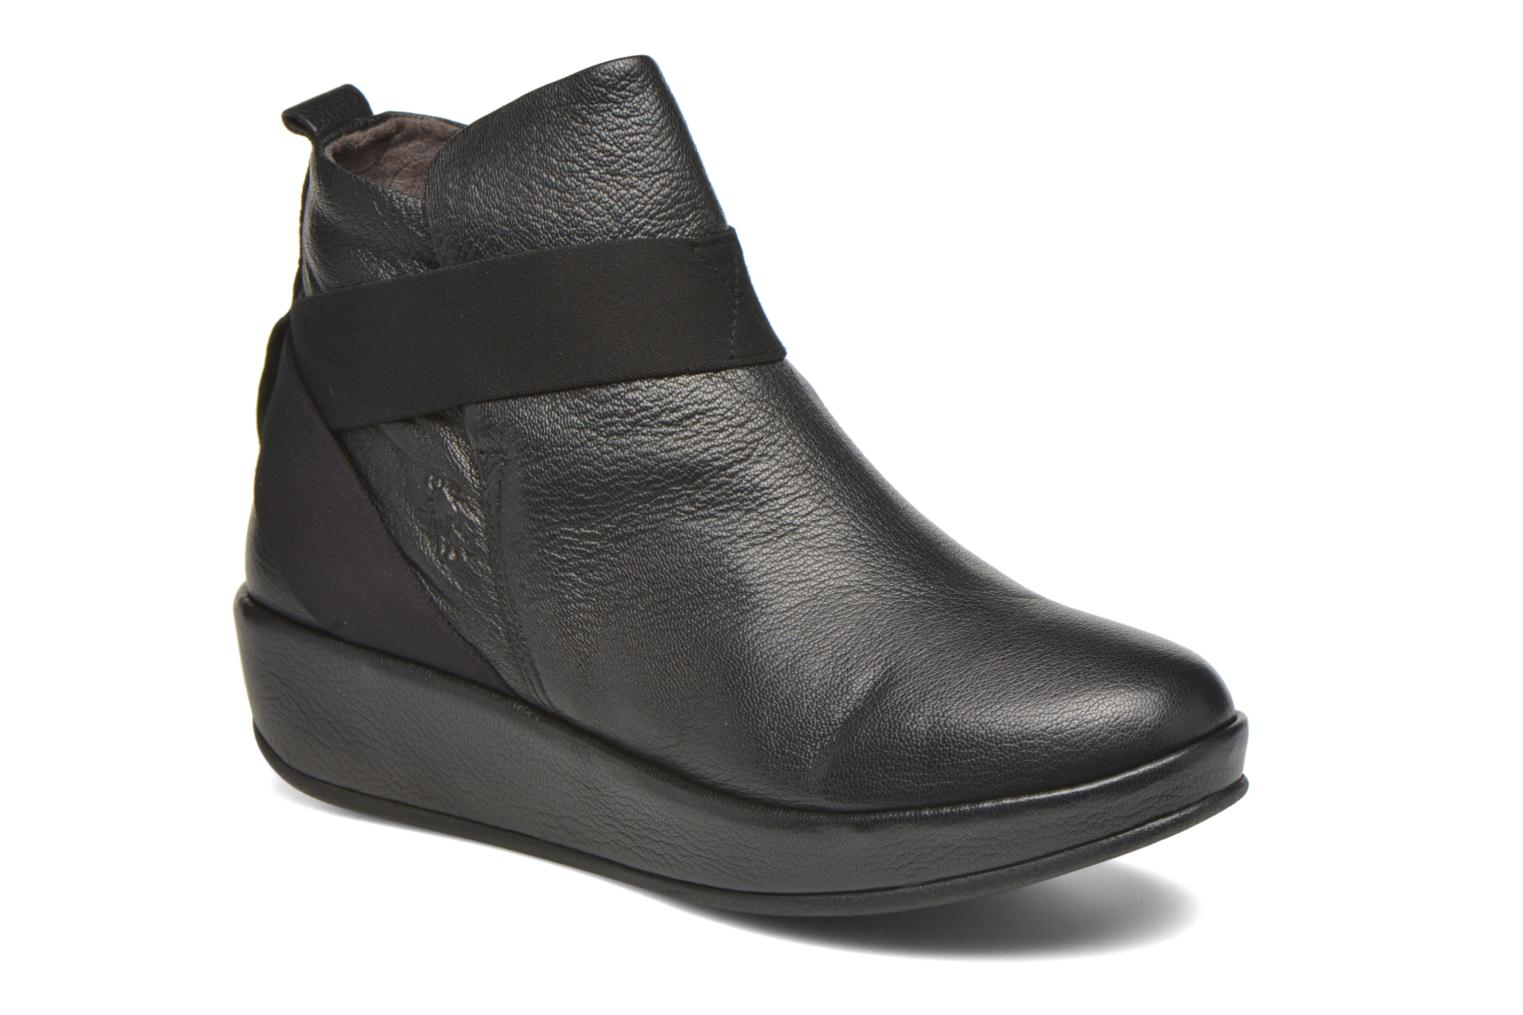 Bottines et boots Fly London Beta660 Noir vue détail/paire